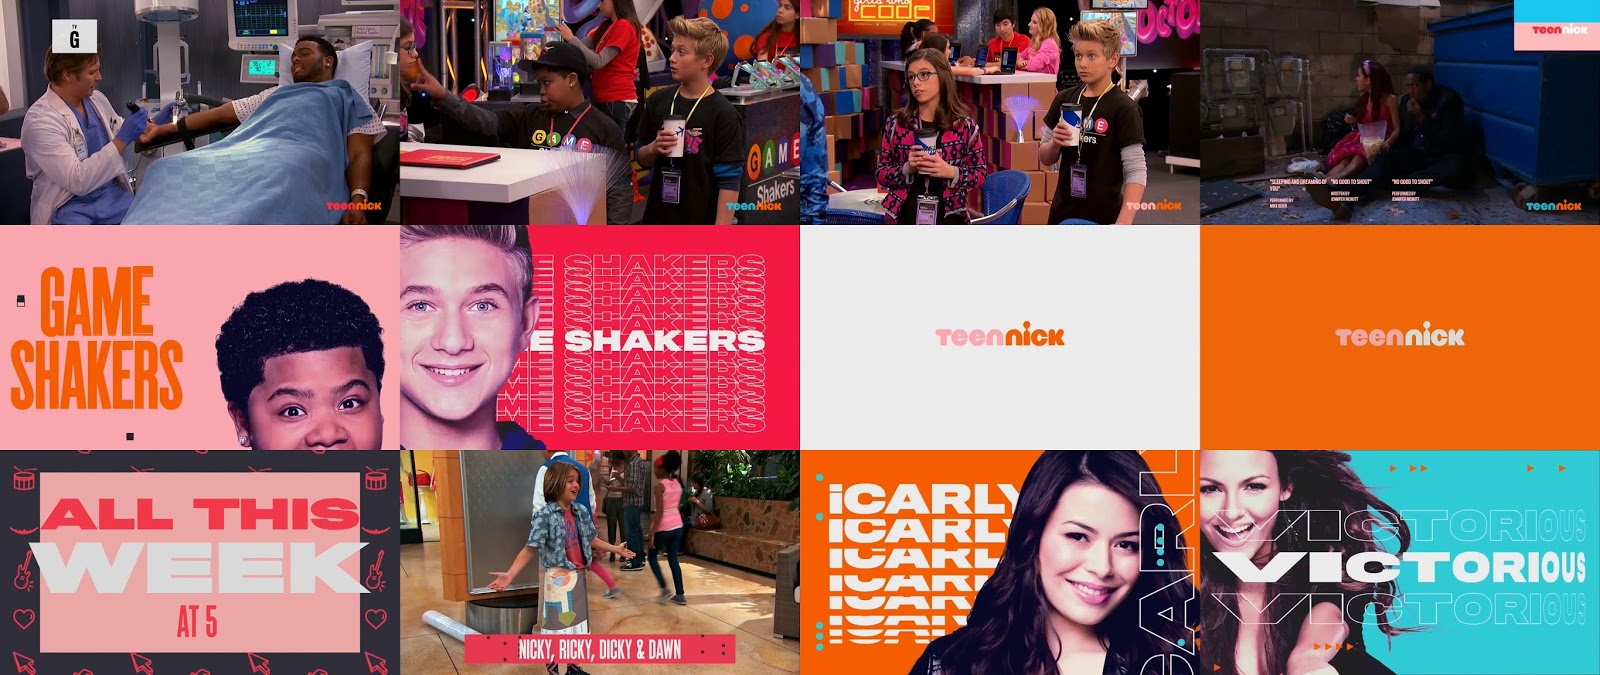 How to Watch TeenNick Without Cable 2019 - Your Top 4 Options